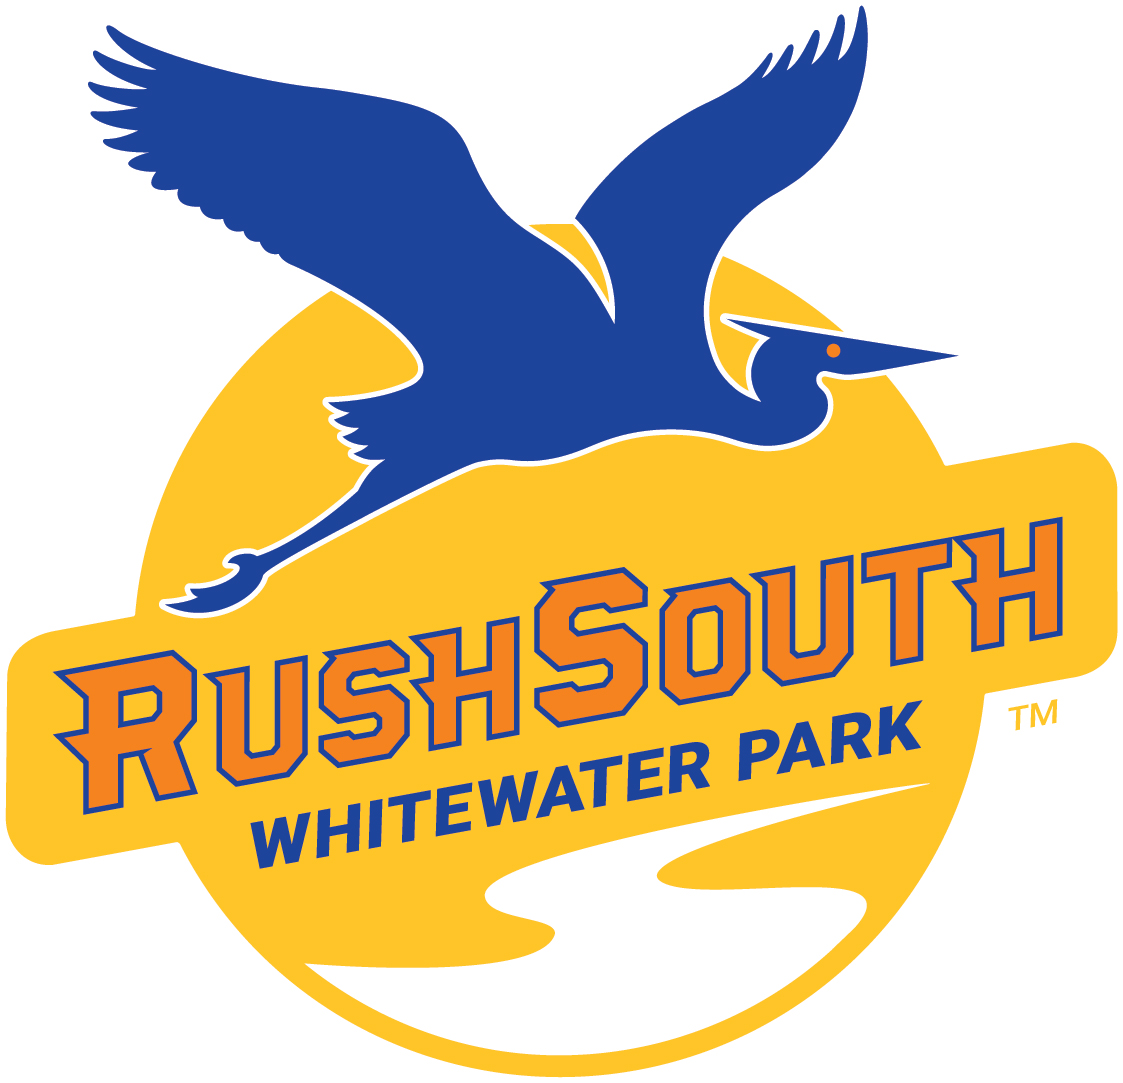 RushSouth Whitewater Park